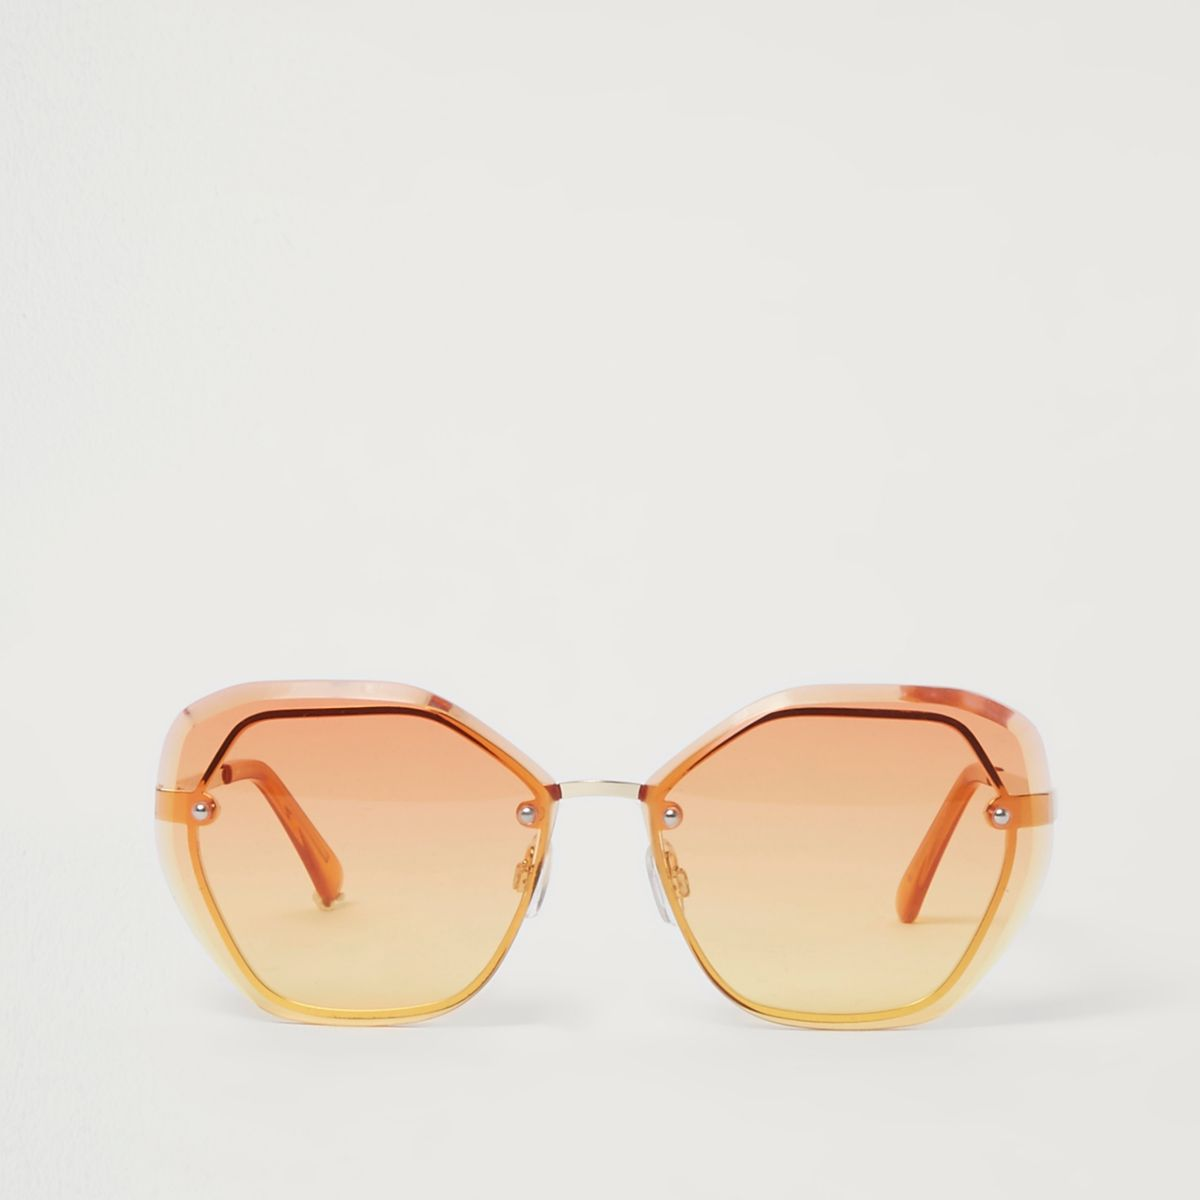 Orange oversized glam laid on lens sunglasses